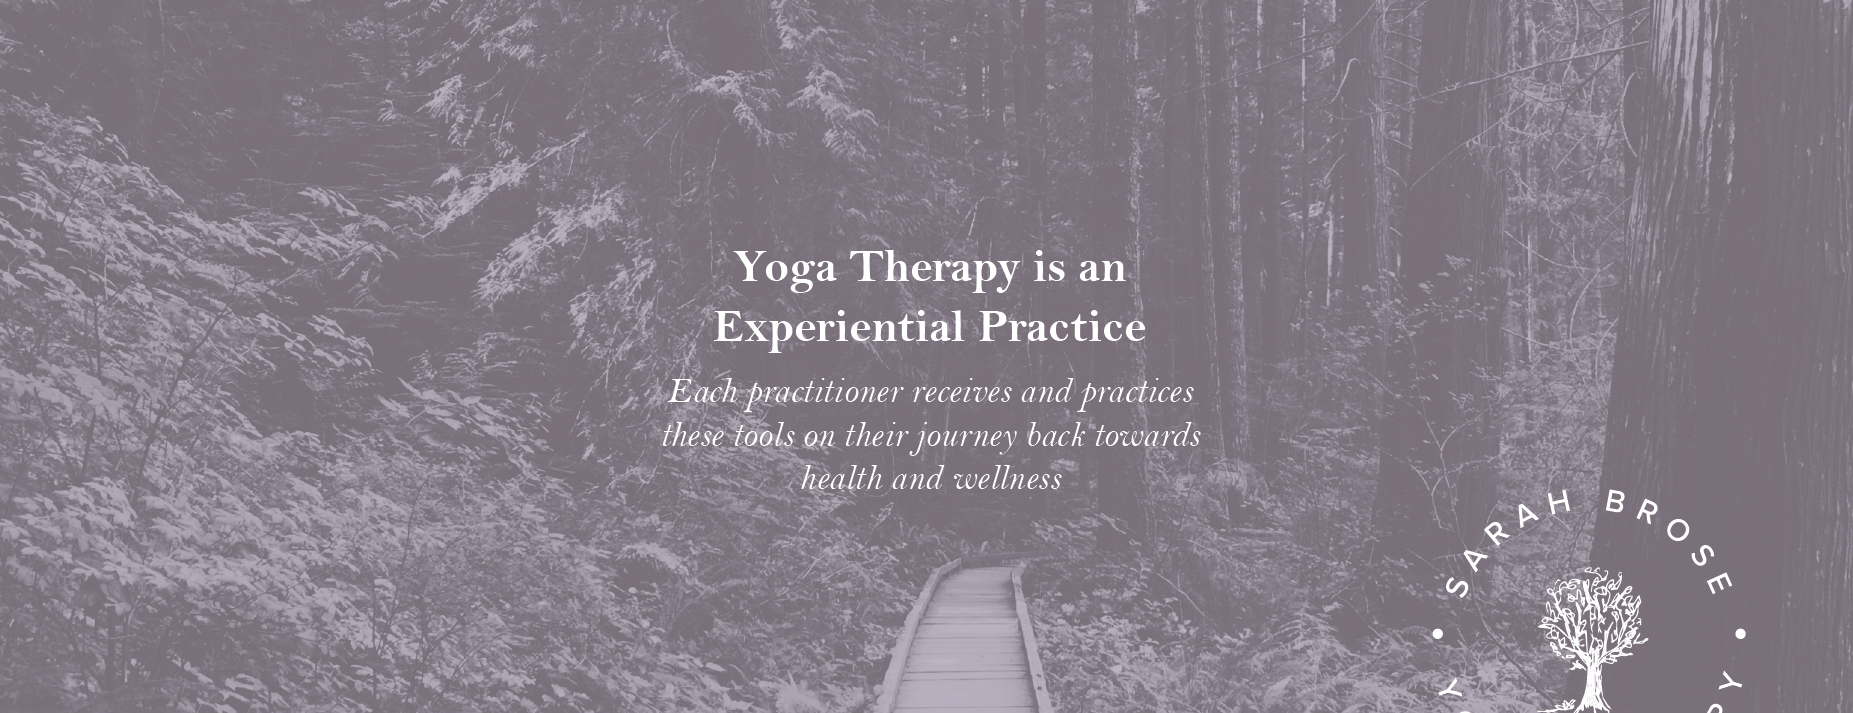 sarah brose yoga therapy brand design